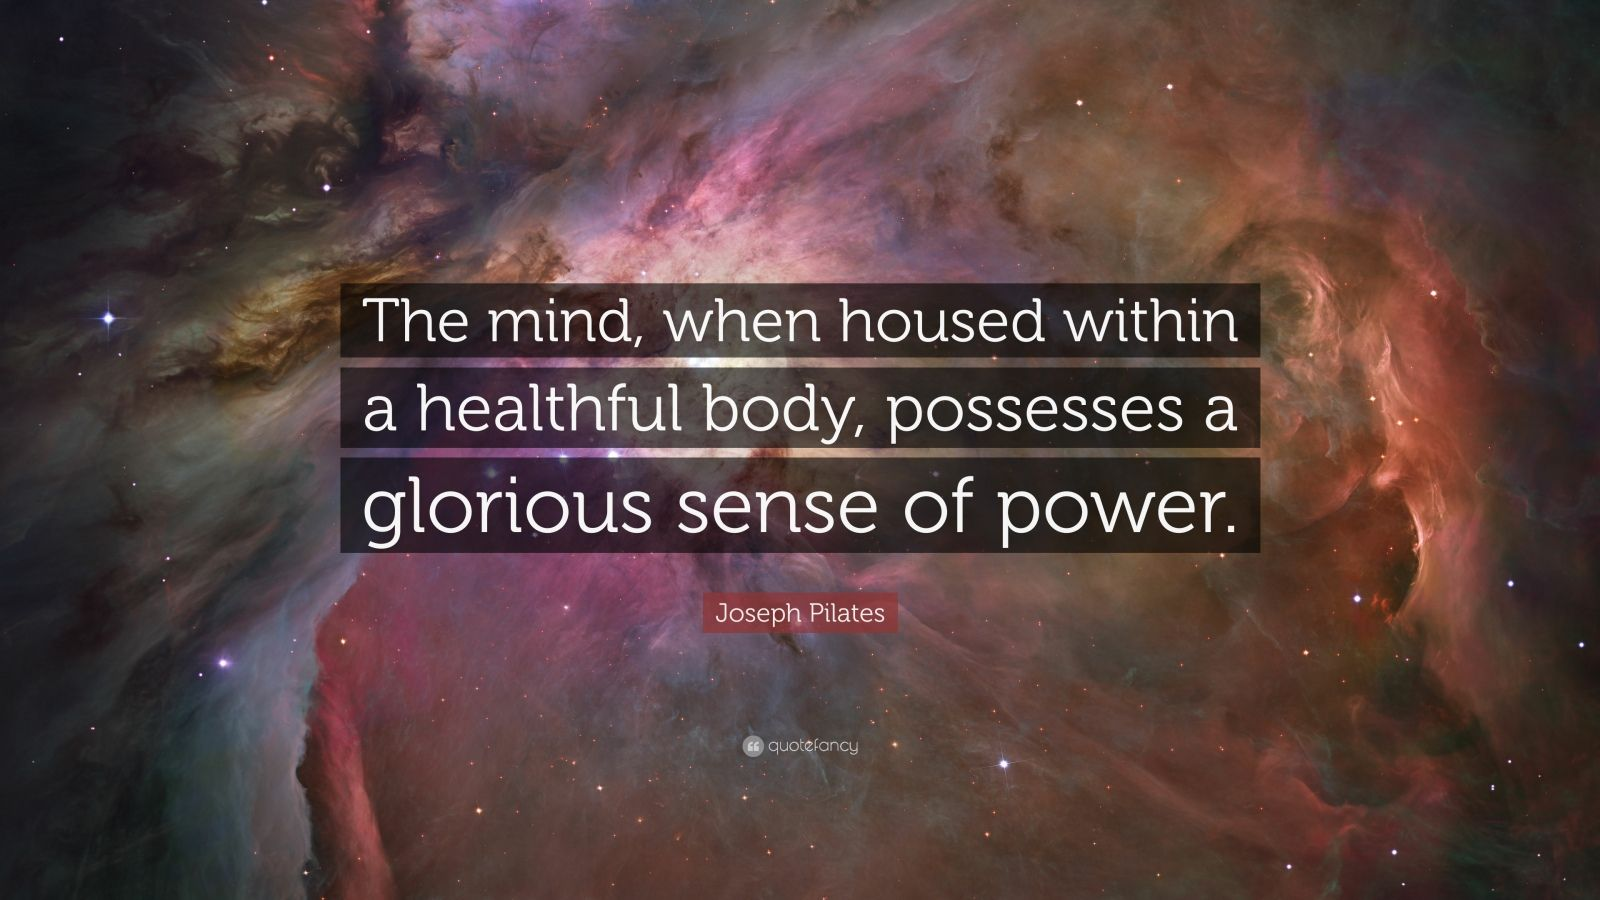 """Joseph Pilates Quote: """"The mind, when housed within a healthful body, possesses a glorious sense of power."""""""